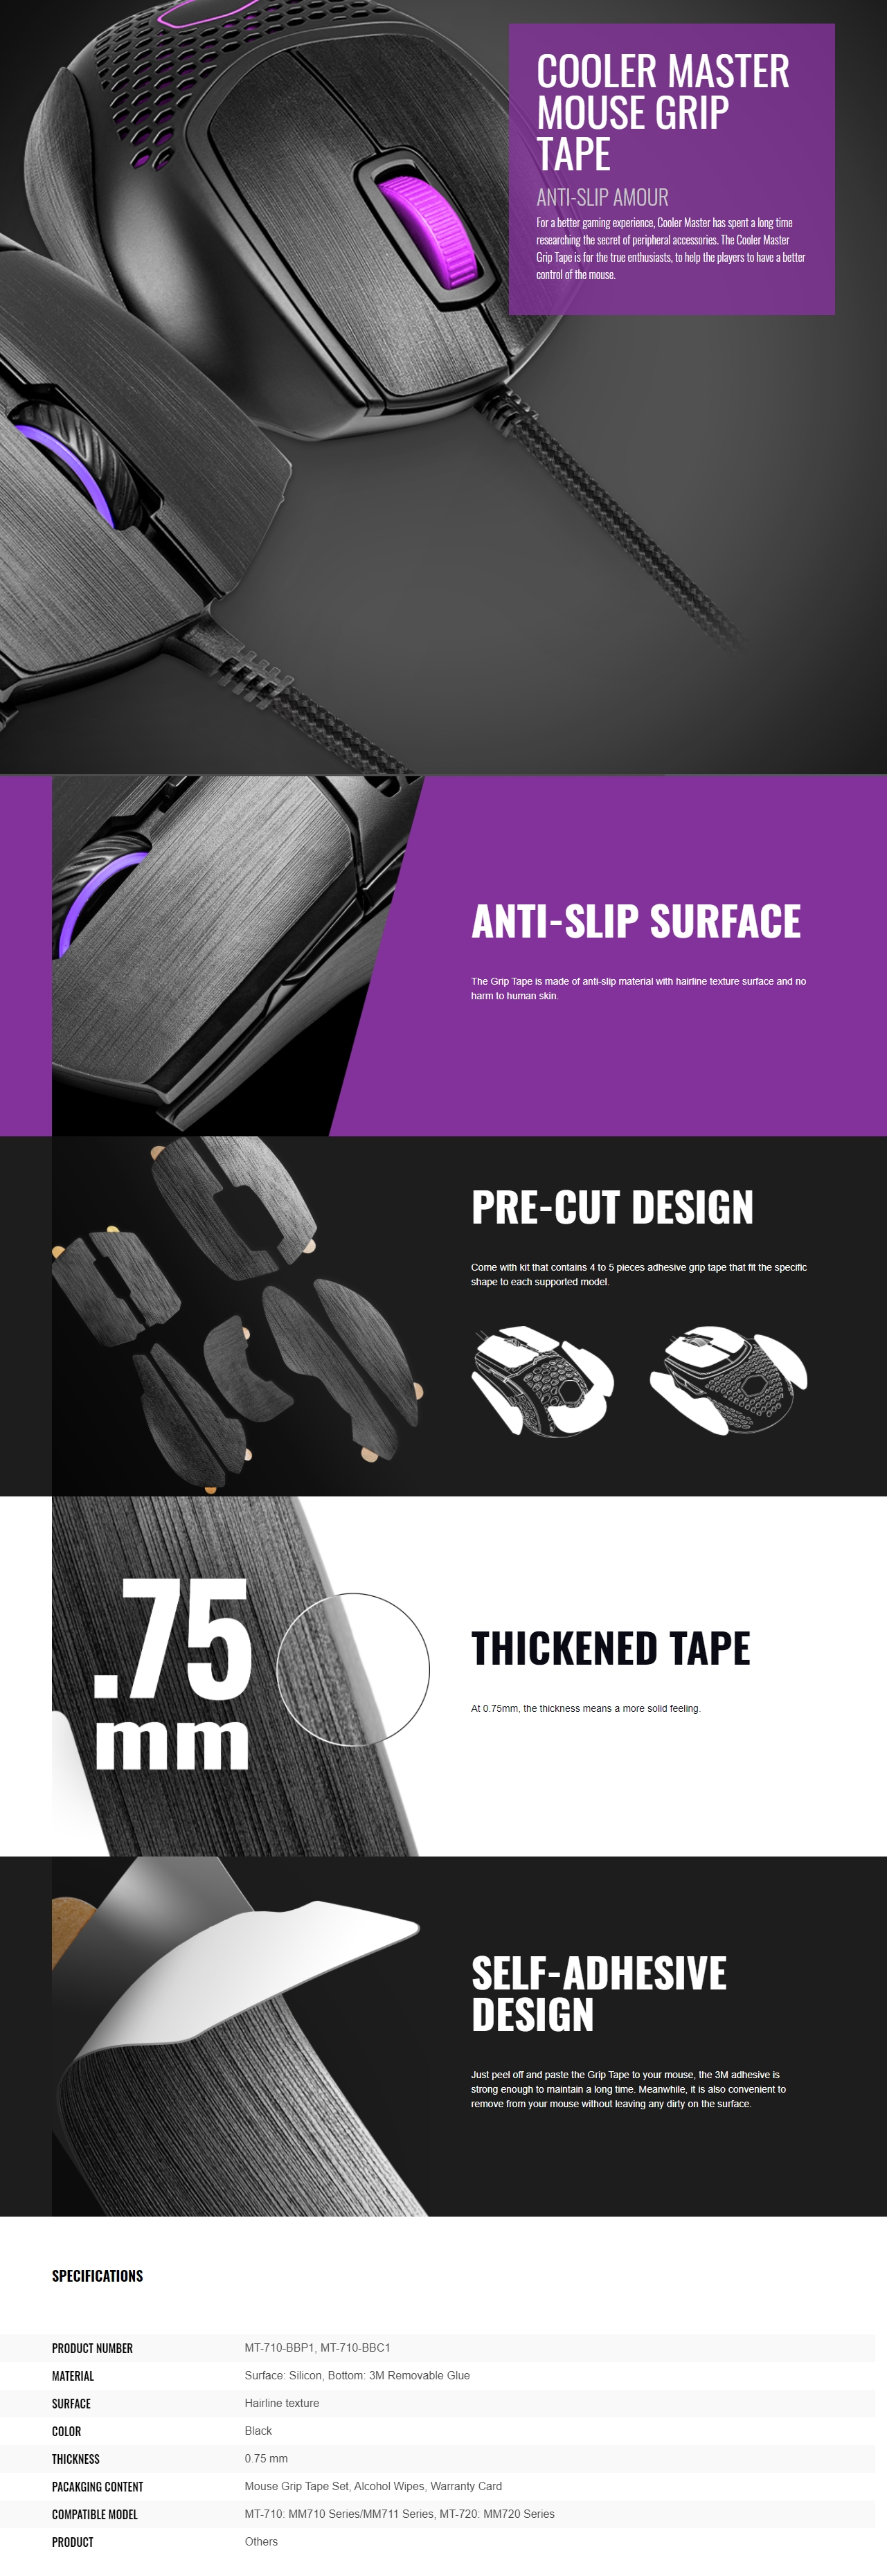 A large marketing image providing additional information about the product Cooler Master MM710/711 Mouse Grip Tape - Additional alt info not provided